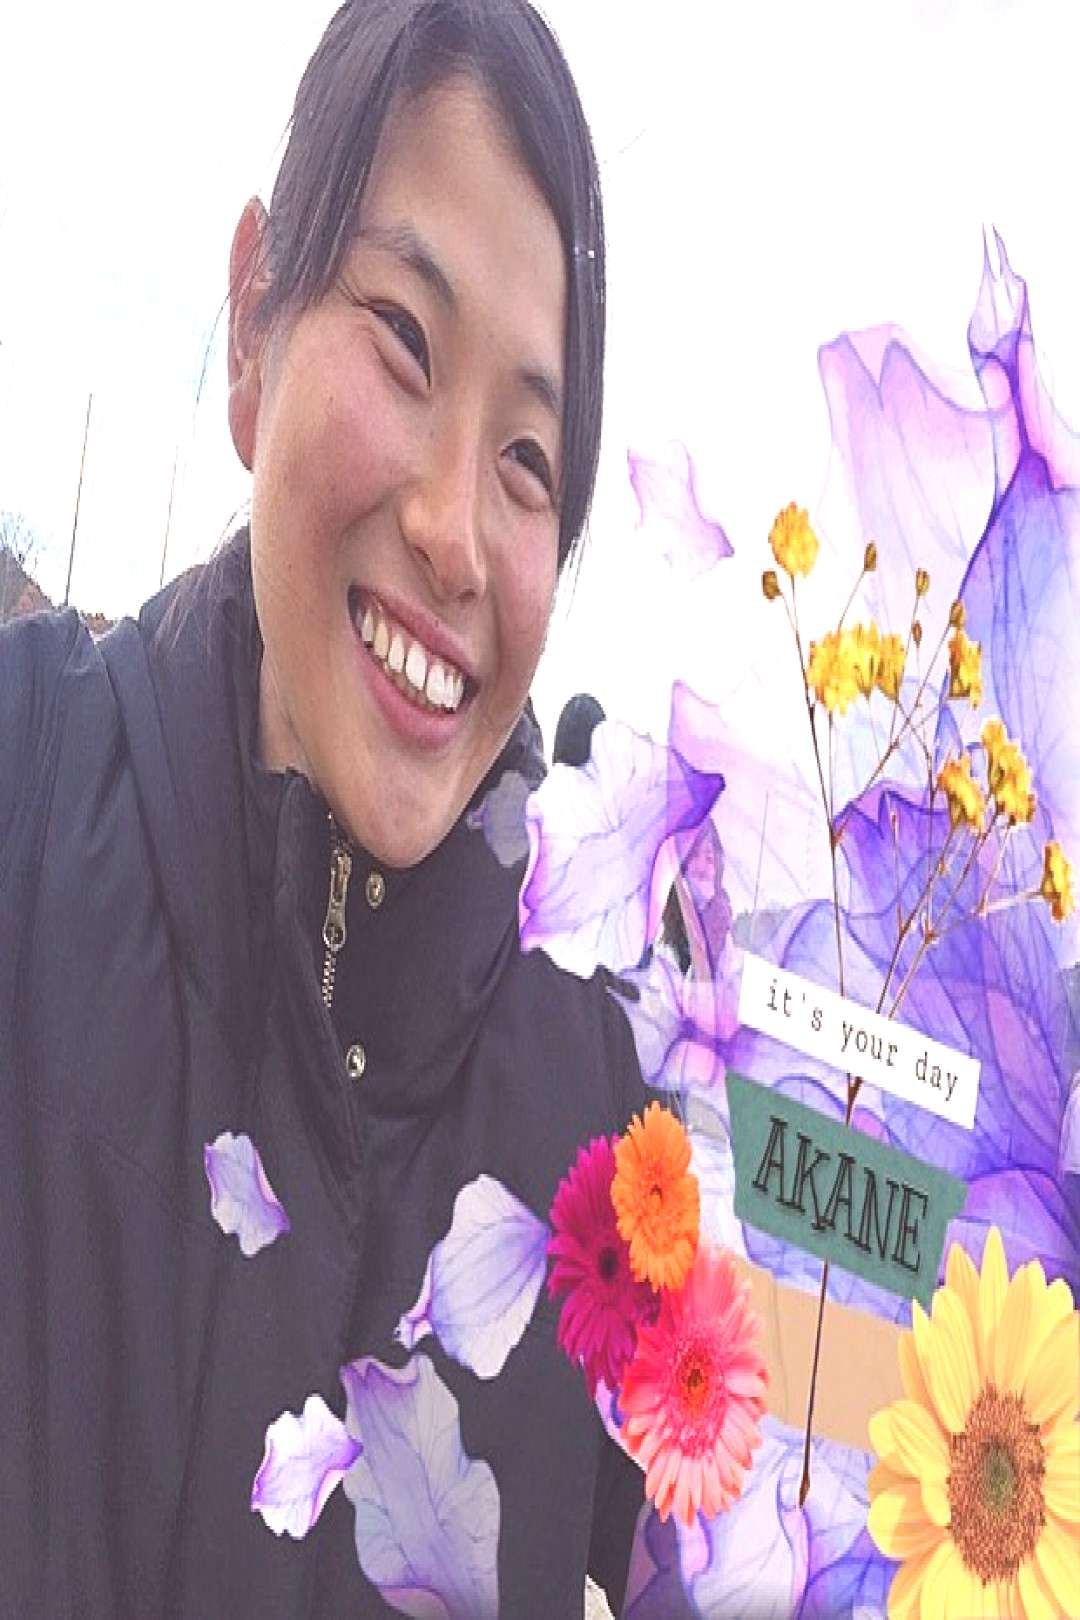 on April 21 2020 1 person flower outdoor and nature